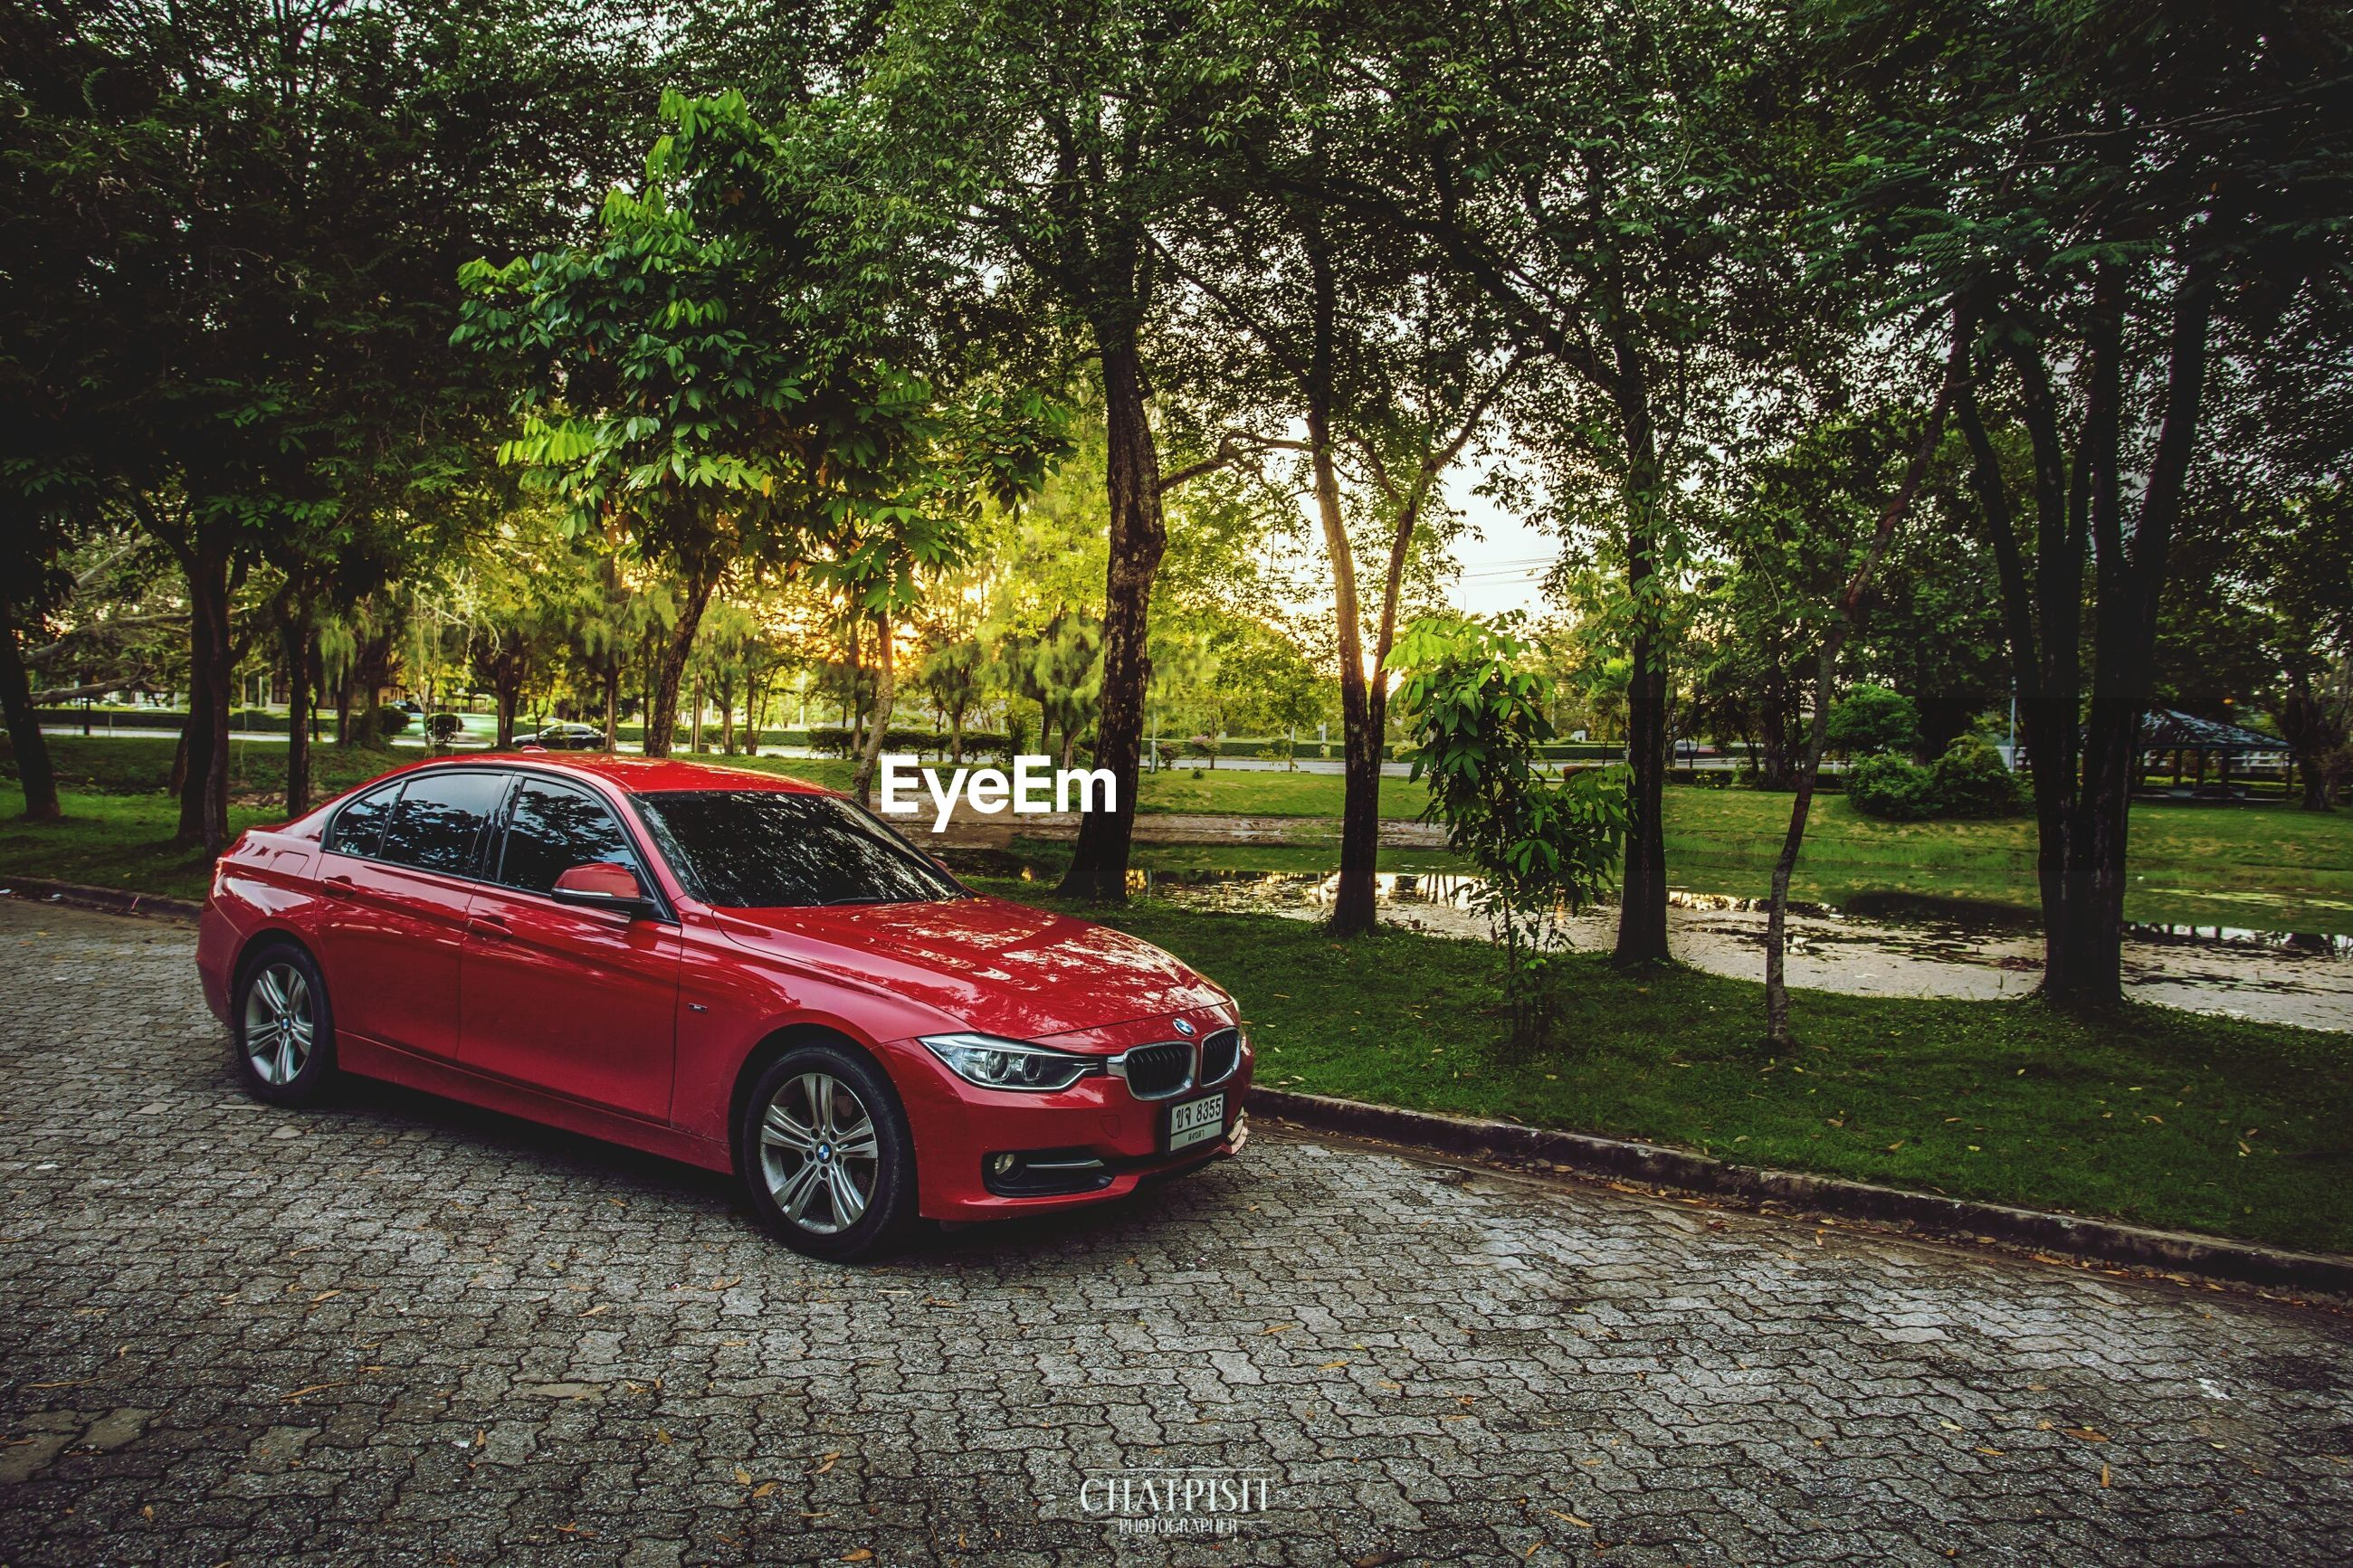 tree, transportation, land vehicle, car, mode of transport, road, red, street, grass, park - man made space, outdoors, day, sunlight, green color, no people, growth, shadow, park, travel, absence